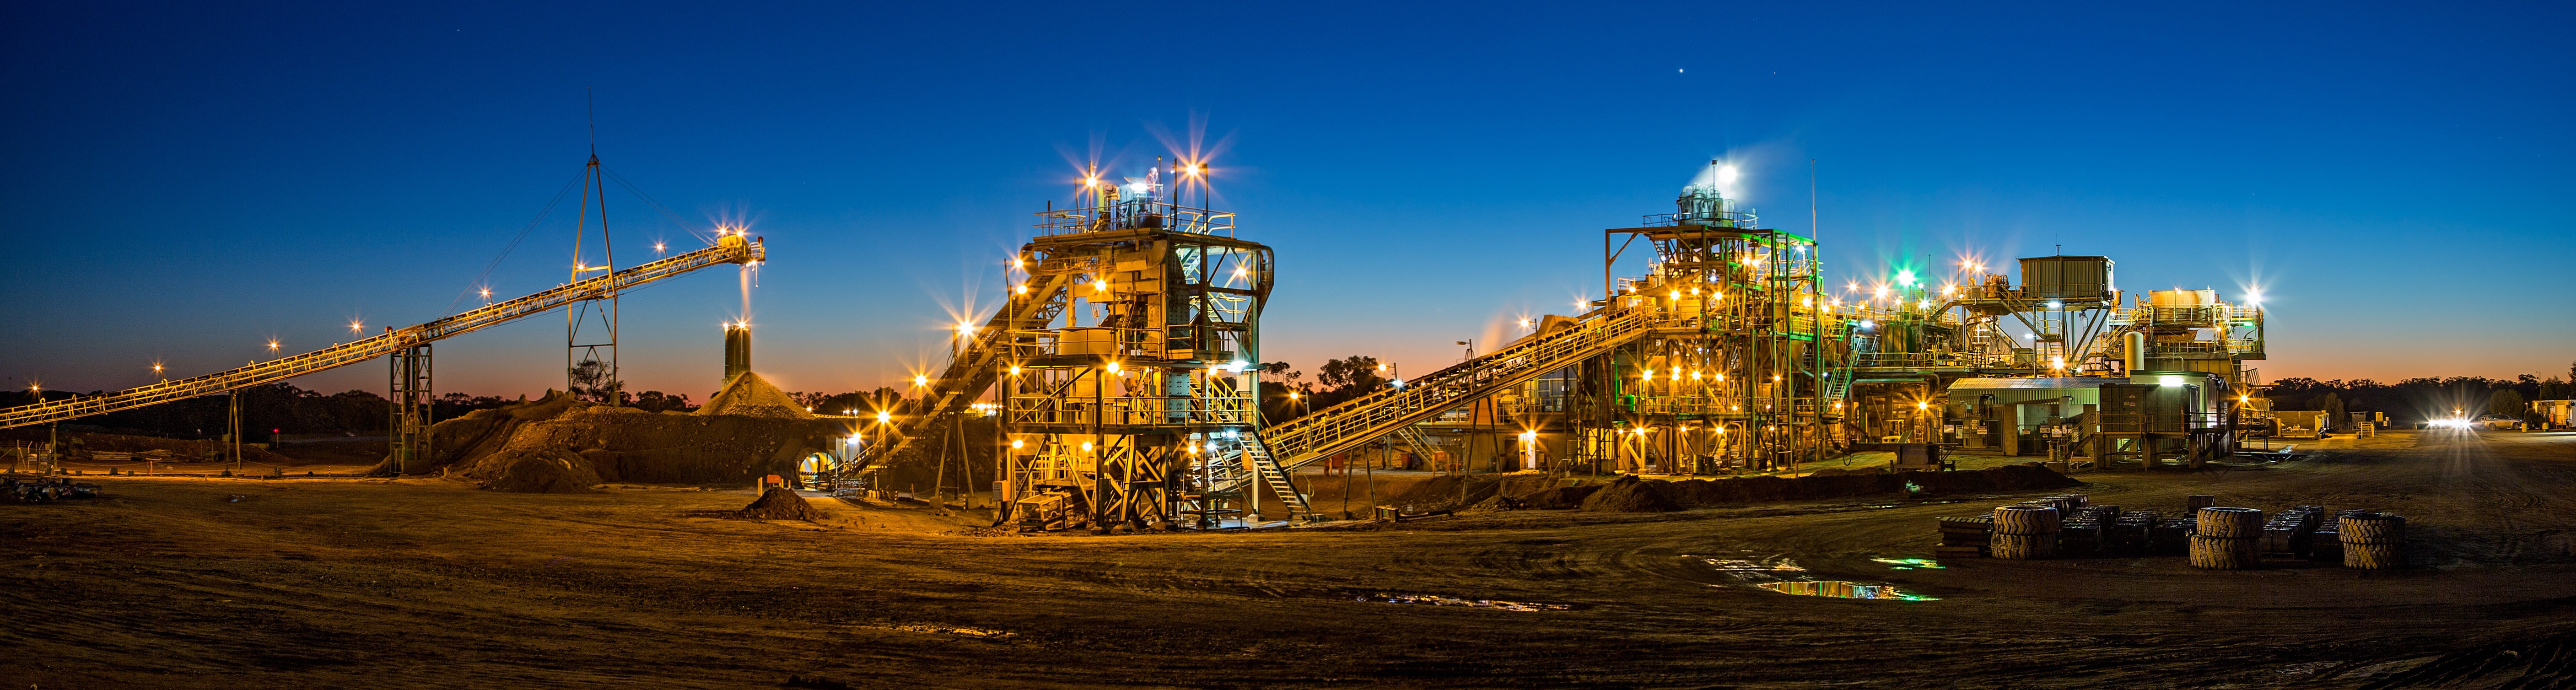 Featured Blog Post Image - Metso Outotec Shares The Value of Test Automation for SAP & Beyond